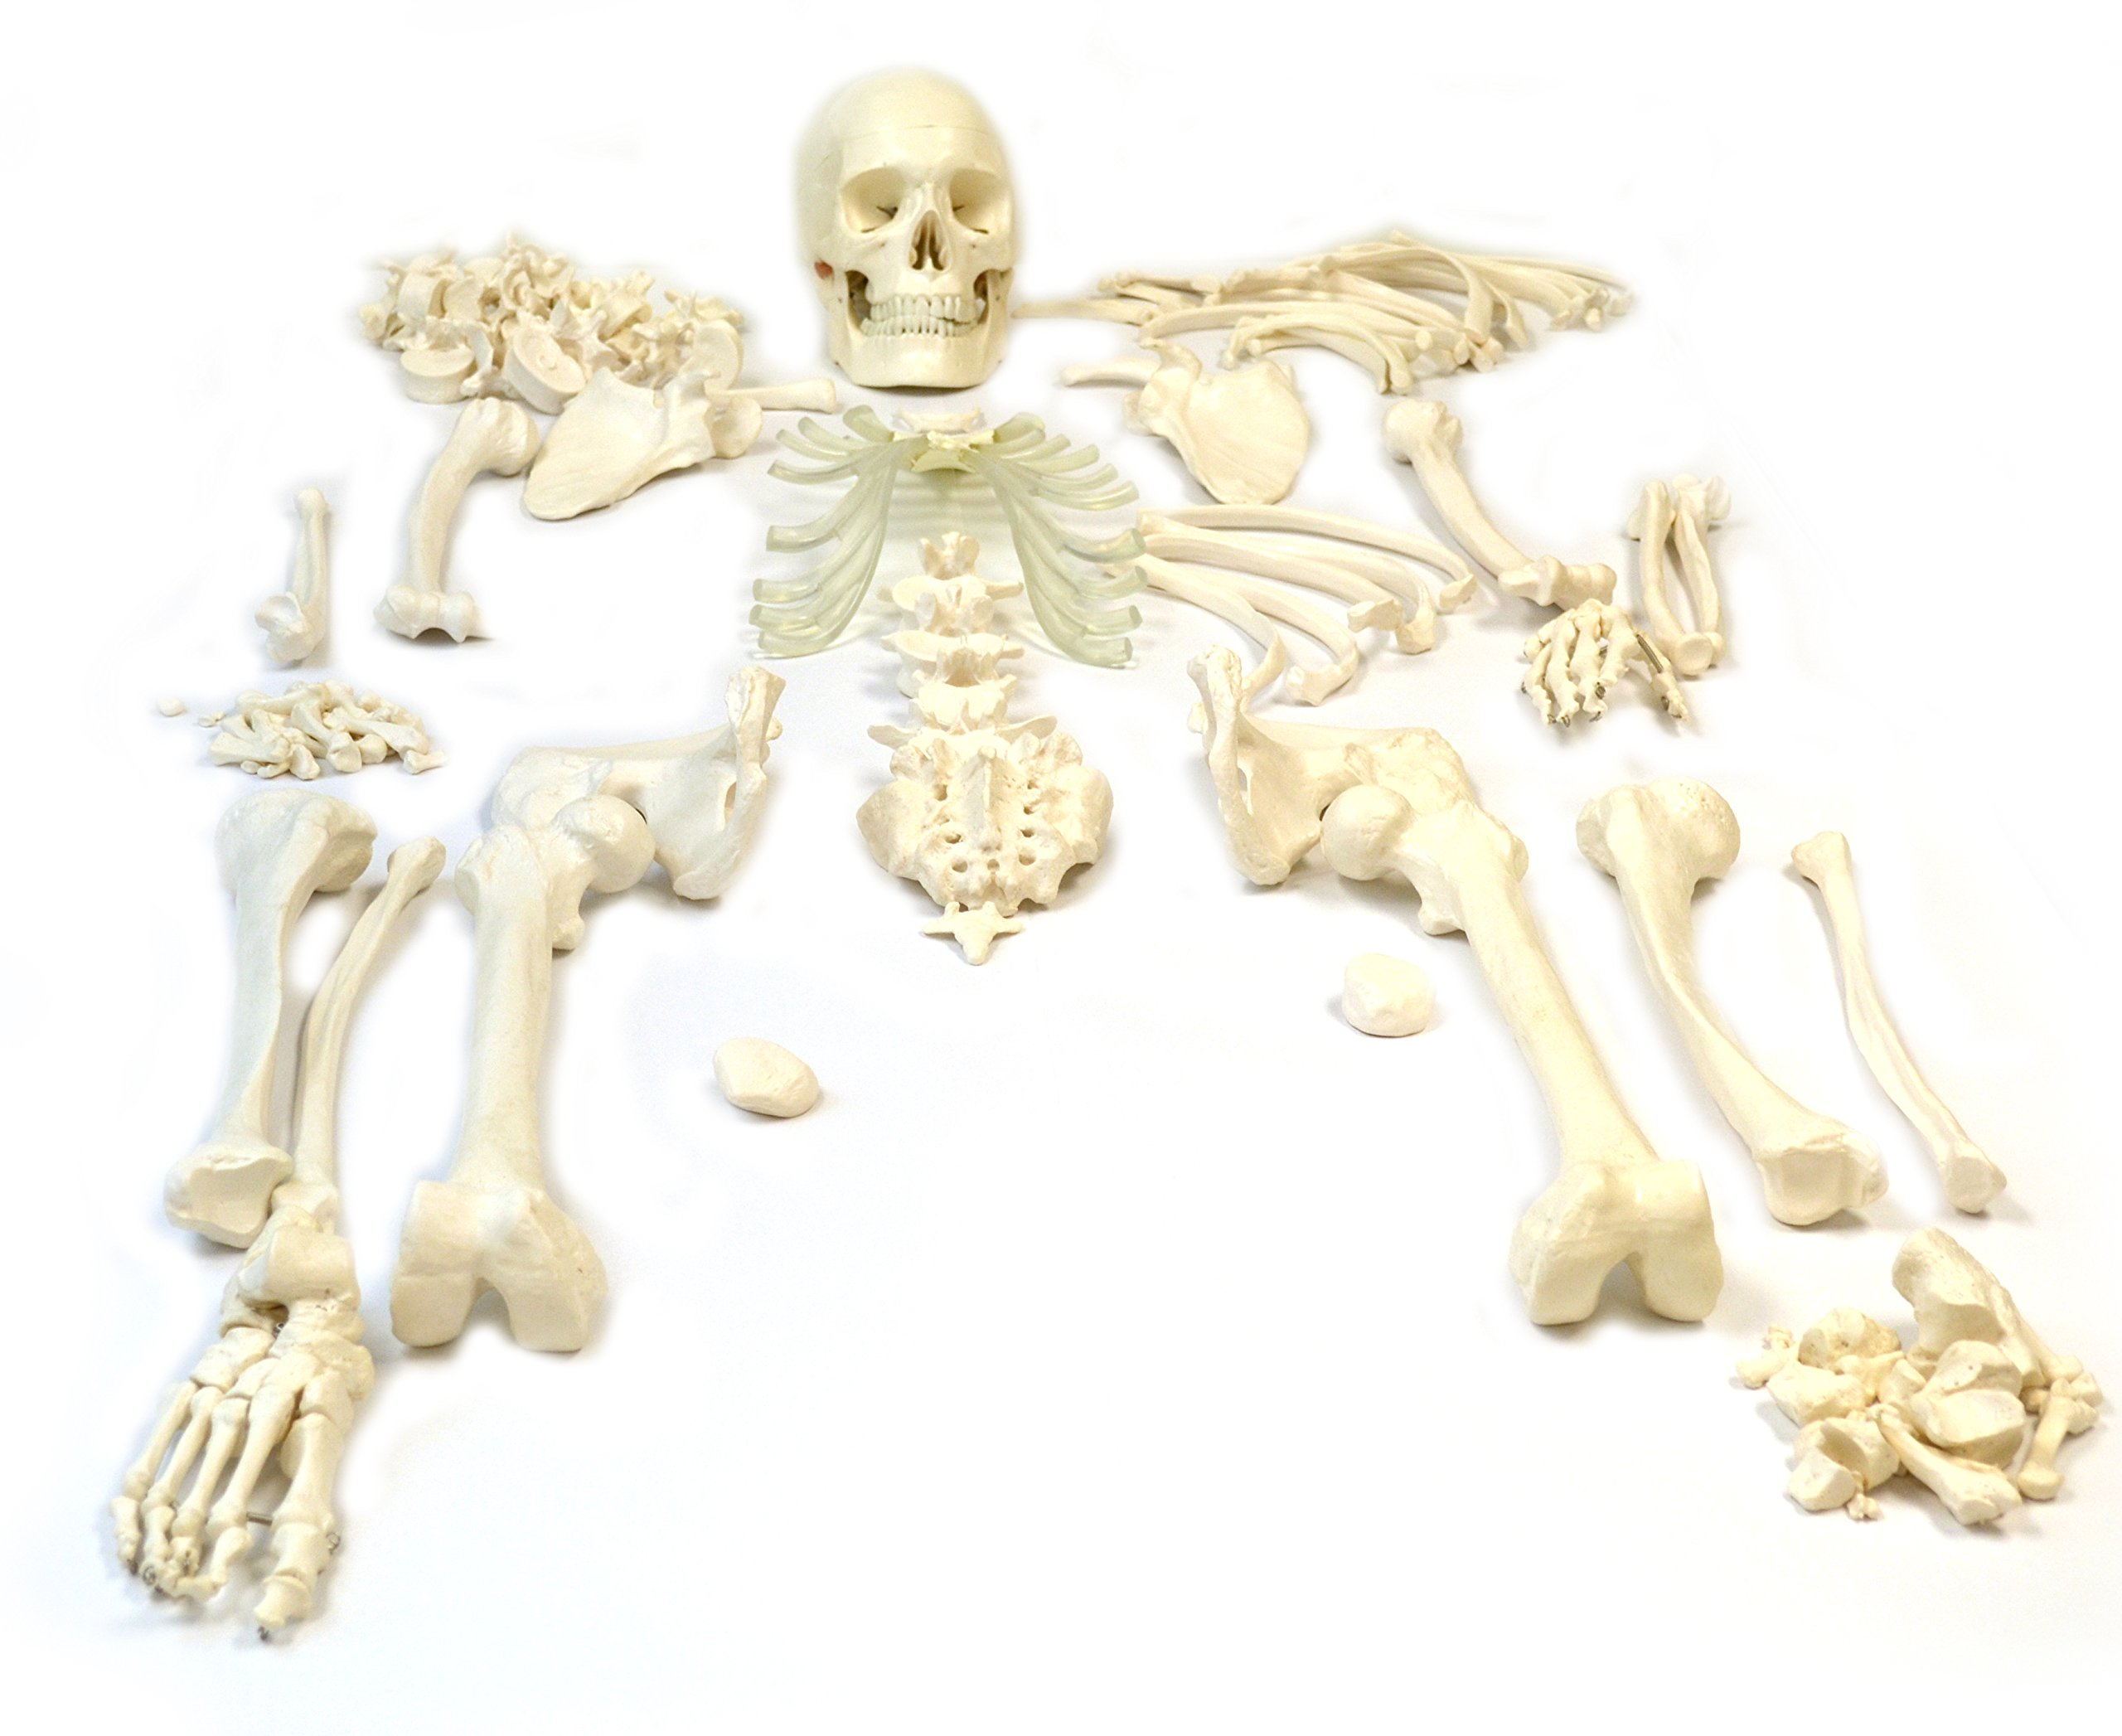 Disarticulated Human Skeleton Full Medical Quality Life Sized 62